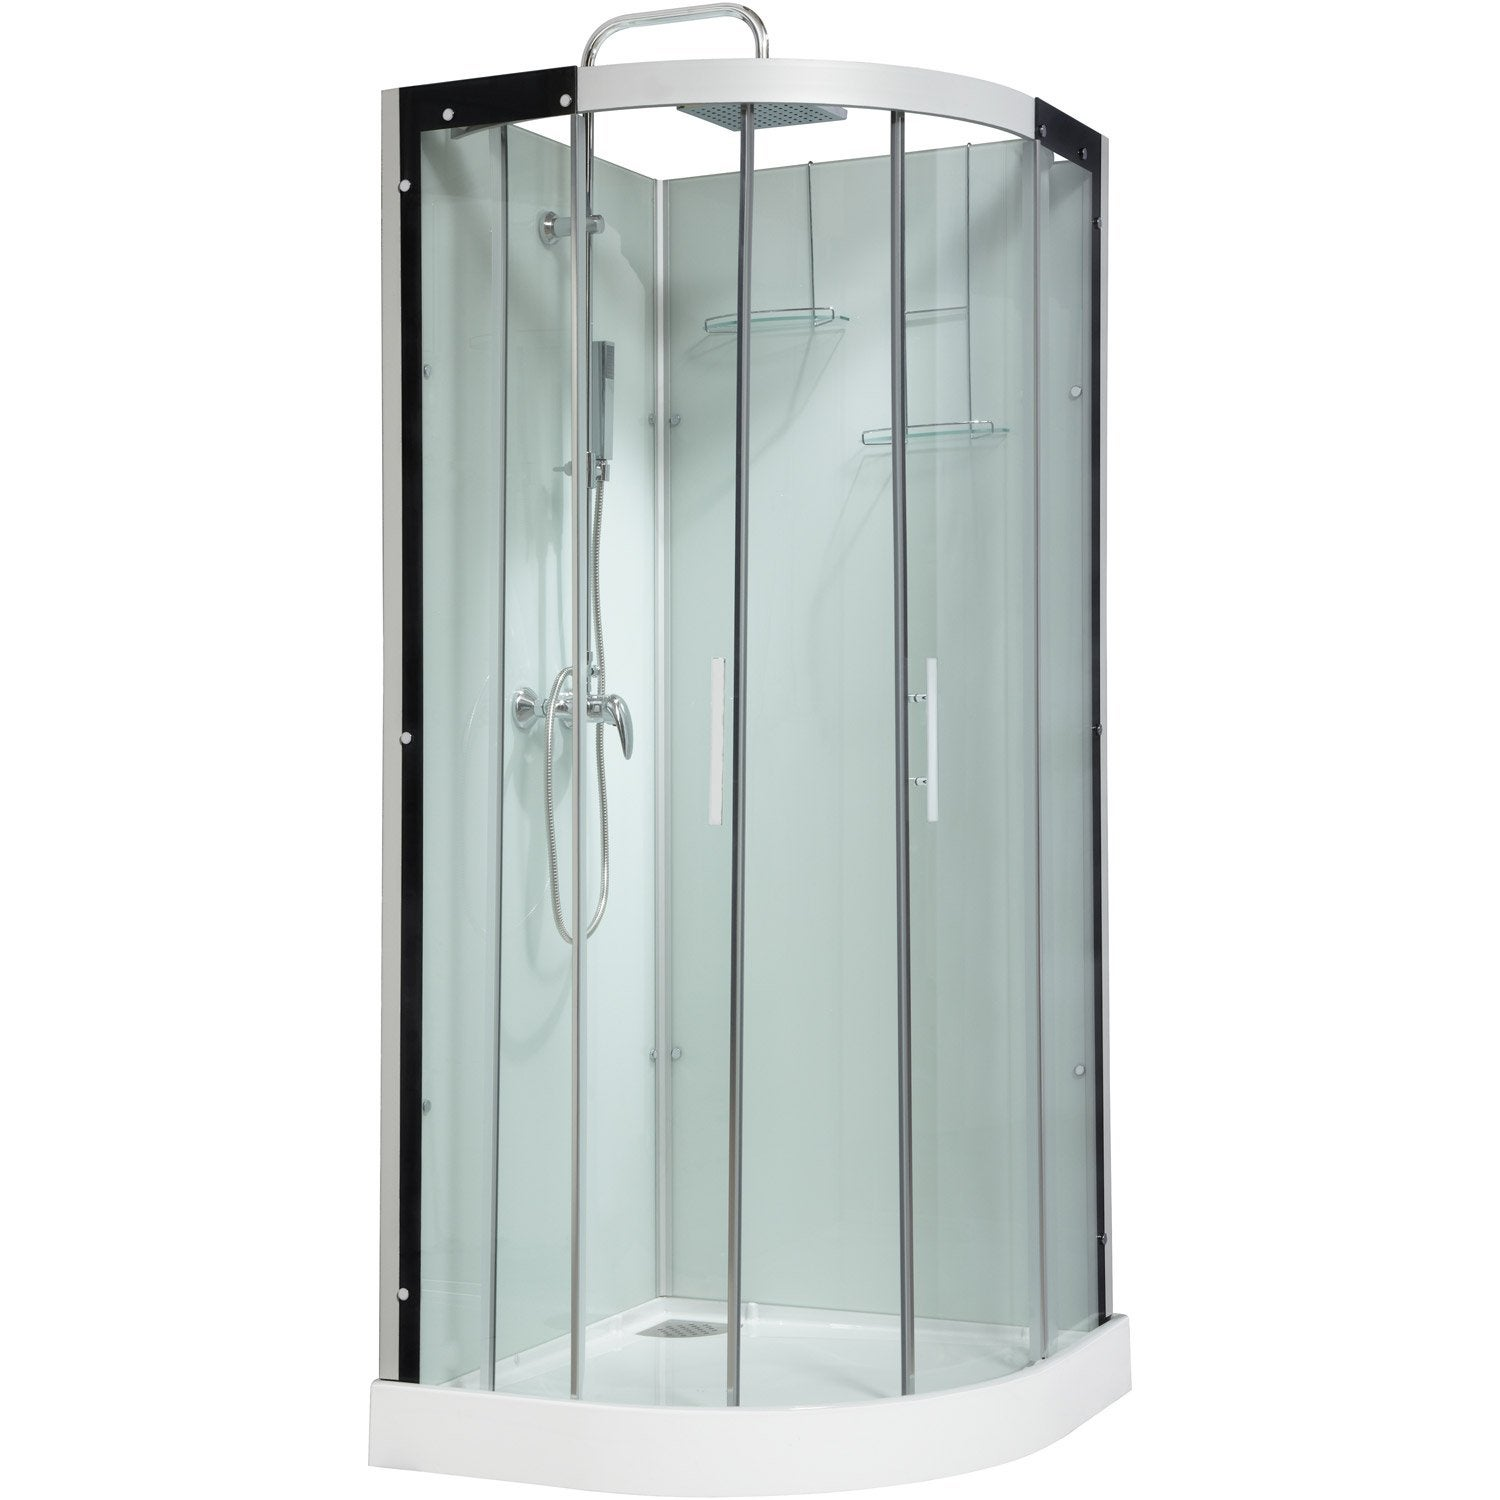 cabine de douche 1 4 de cercle 90x90 cm thalaglass 2. Black Bedroom Furniture Sets. Home Design Ideas